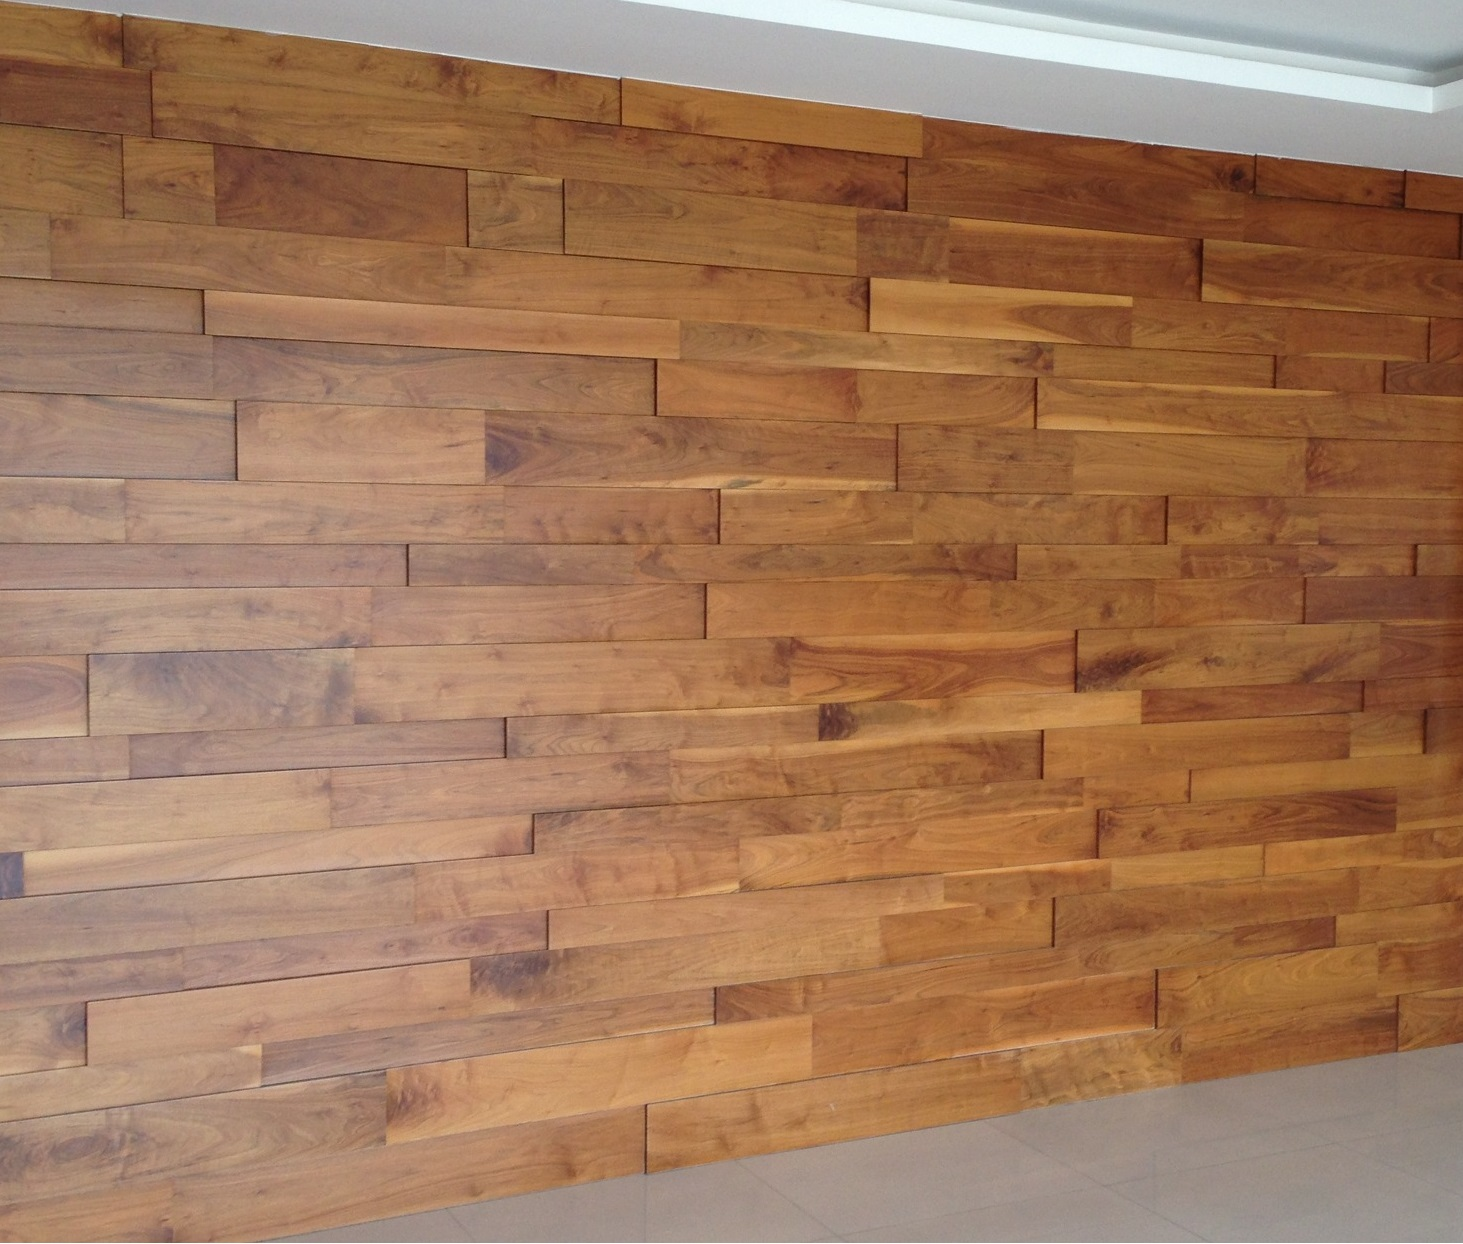 Your opinion on my method for making a wood wall